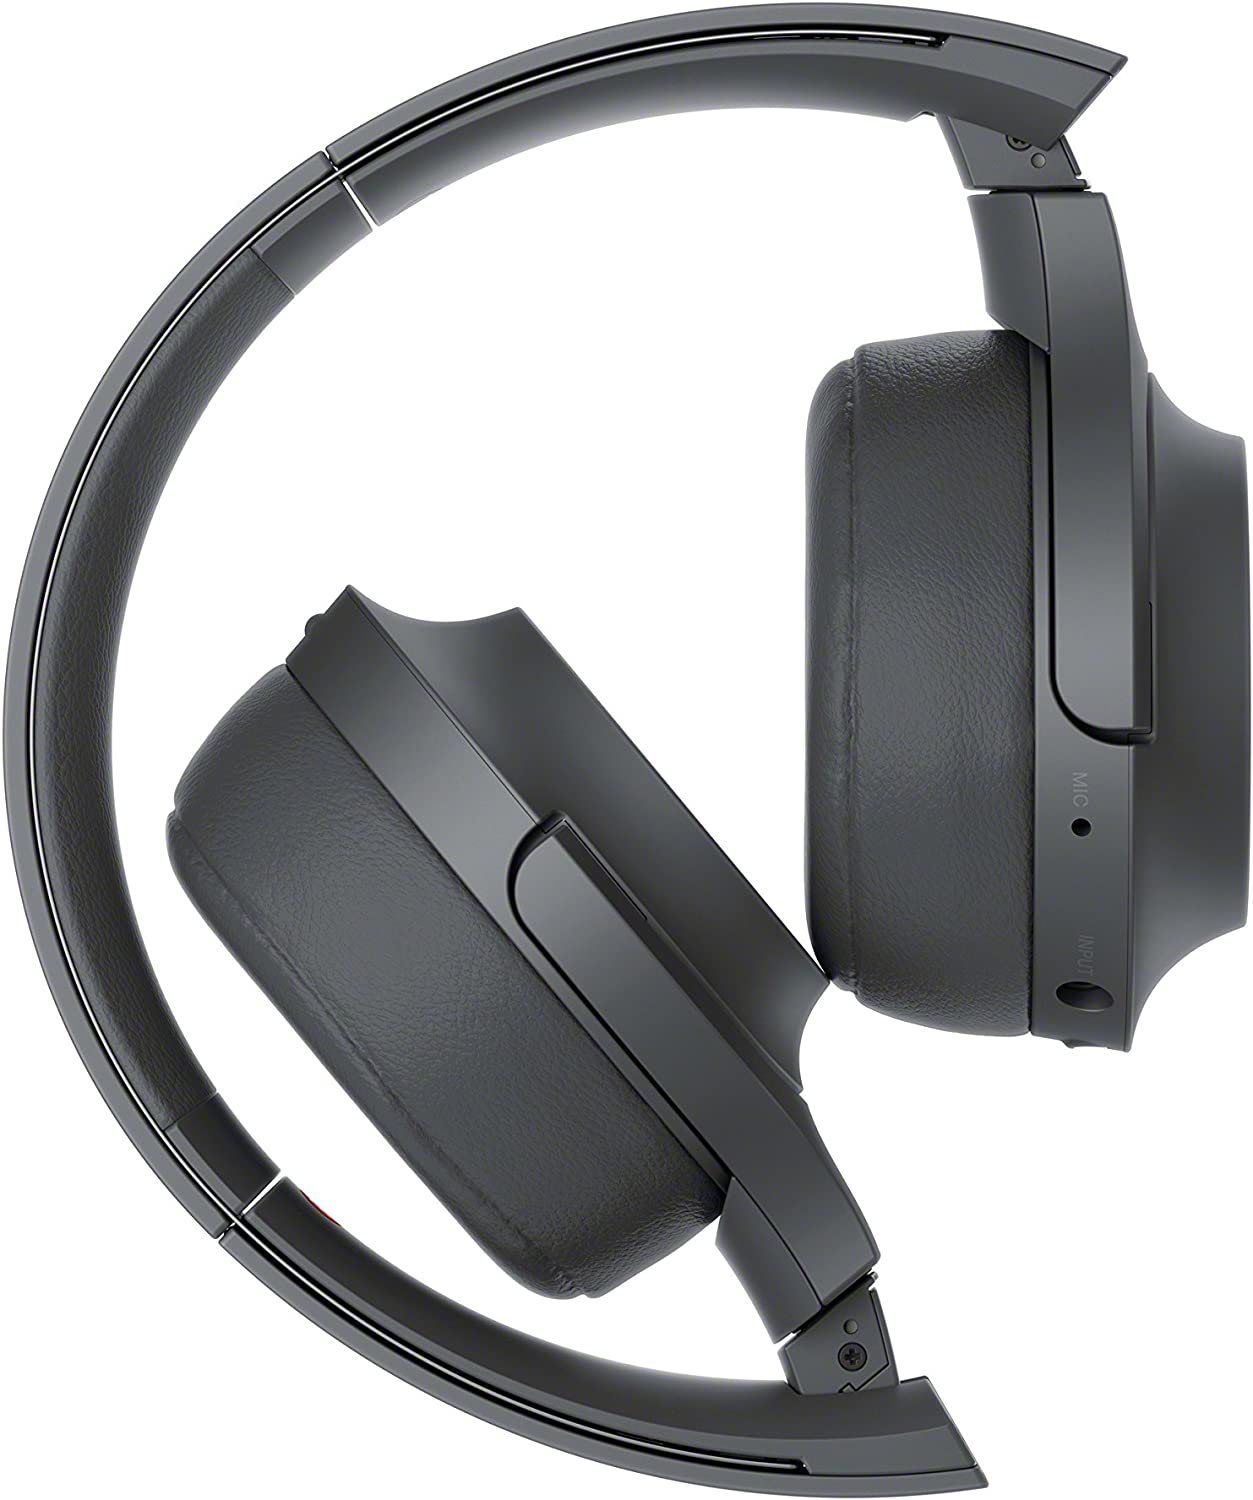 Micro USB to OTG Works with Sony WH-H800 h.Ear on 2 Mini Wireless Direct On-The-Go Connection Kit and Cable Adapter! Black